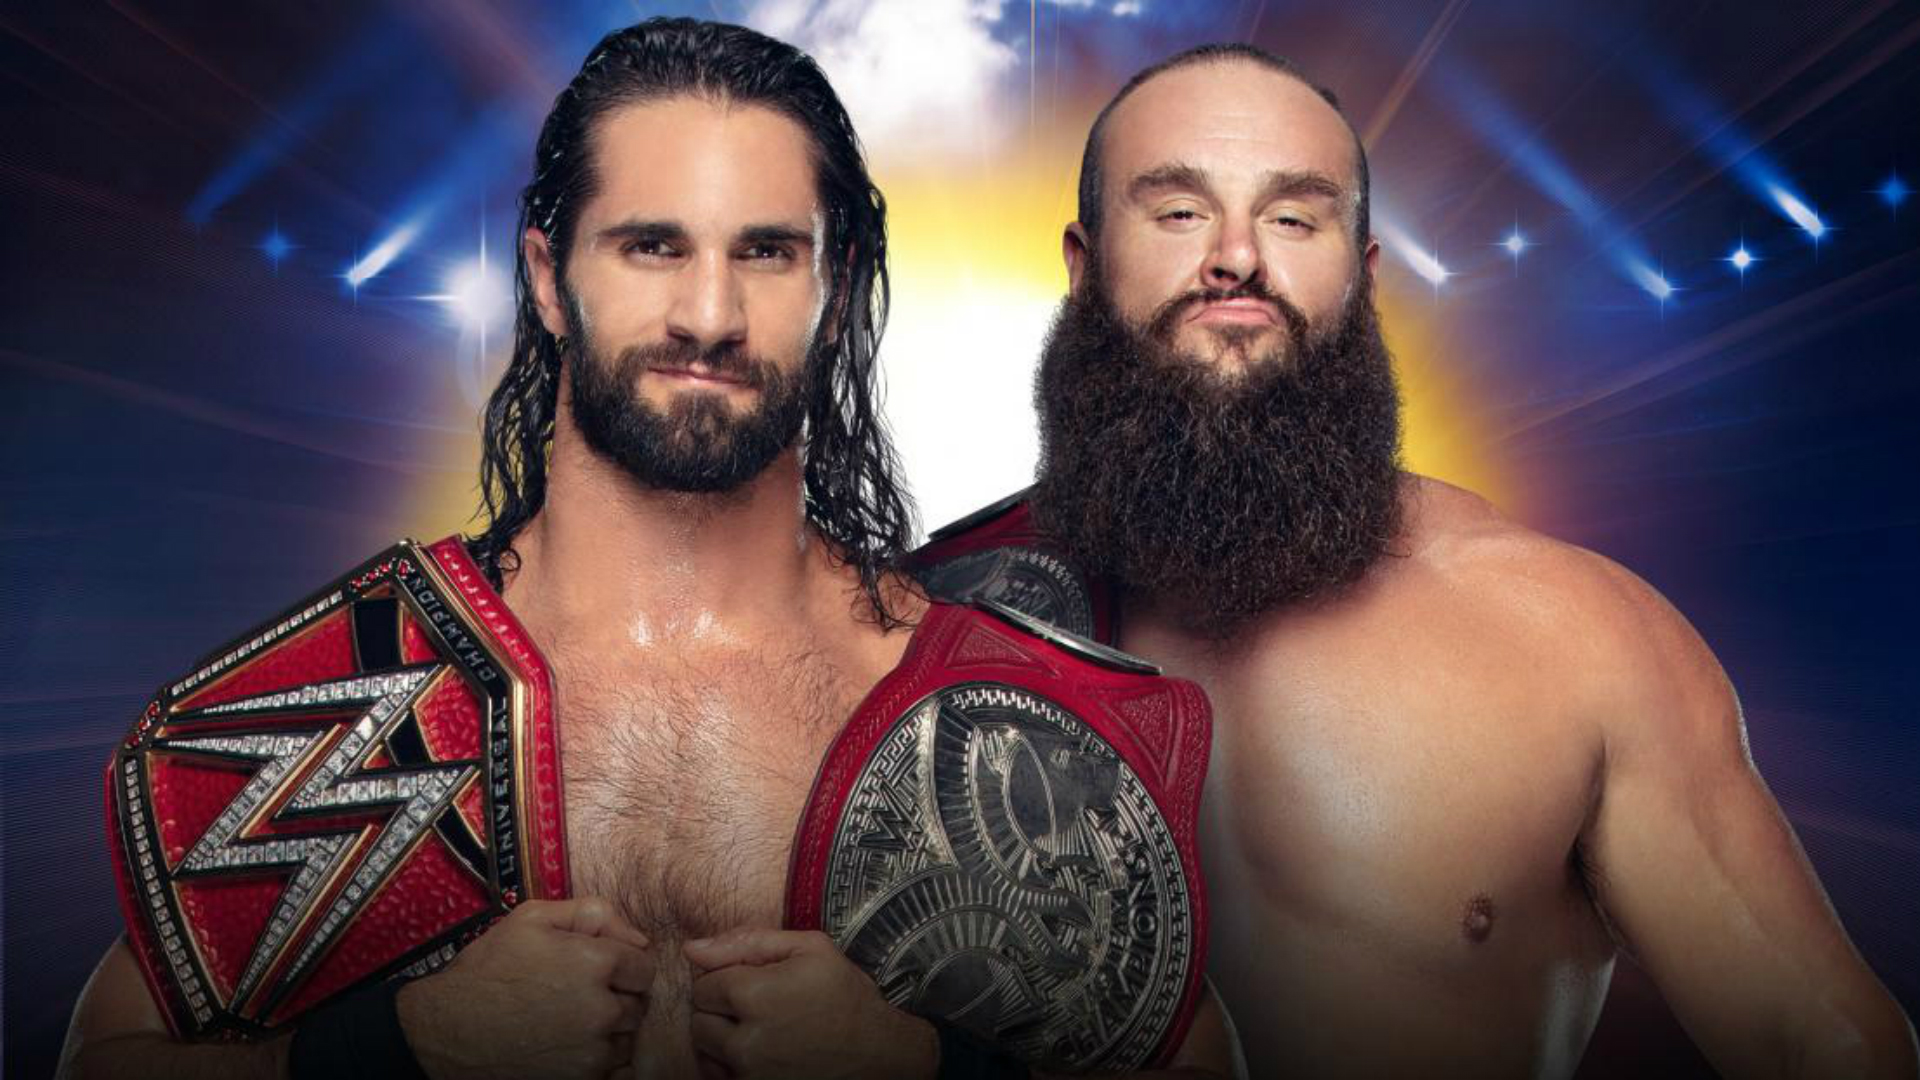 WWE Clash of Champions live results, updates, highlights from full card